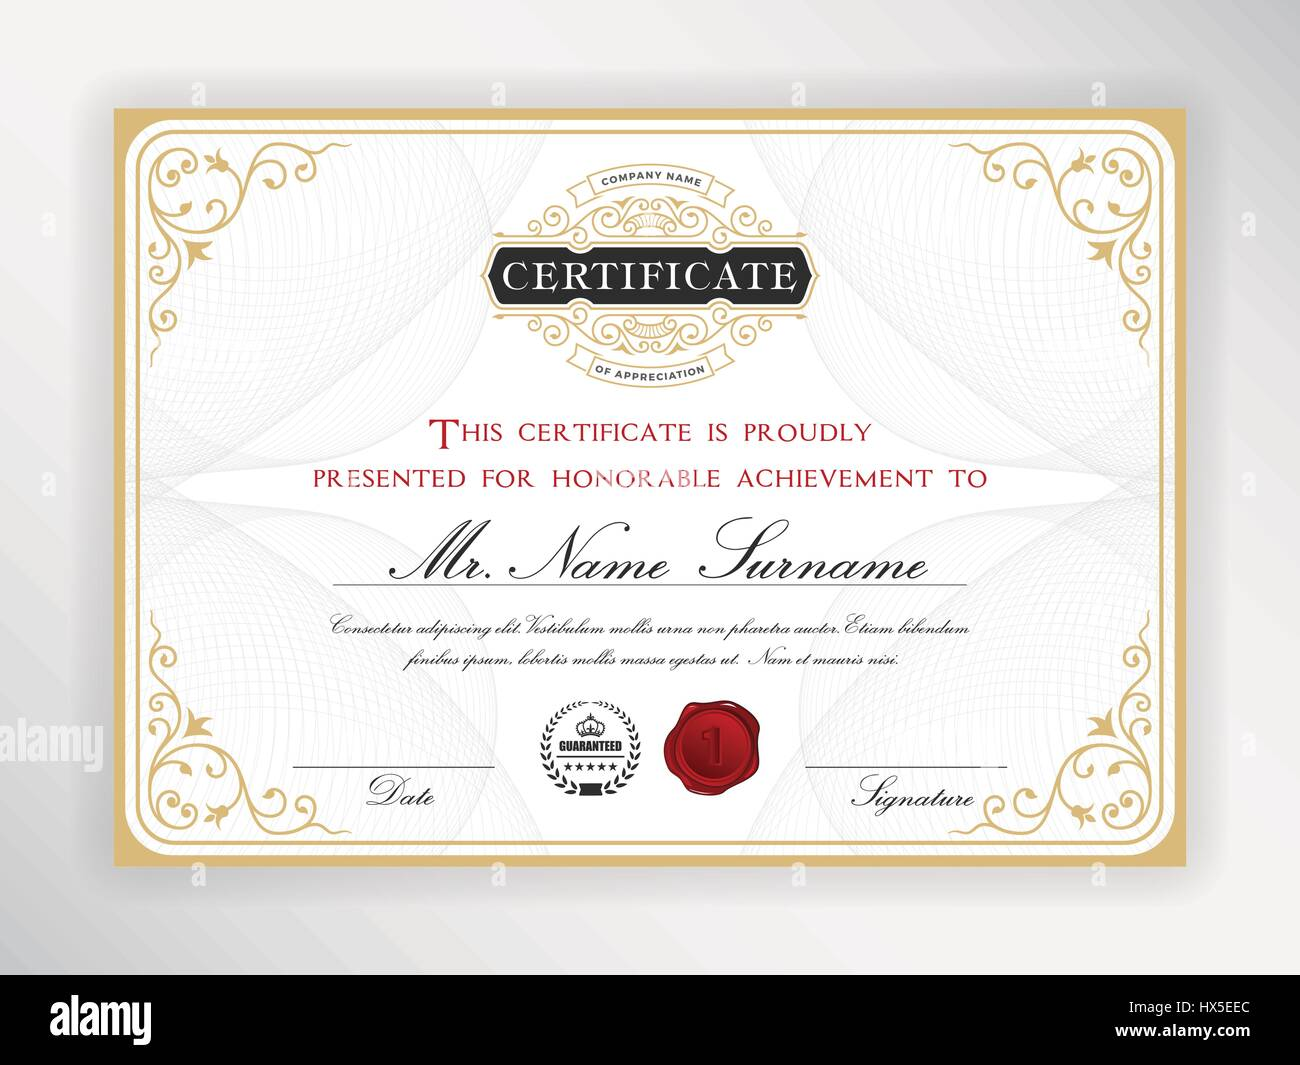 Elegant certificate template design with emblem vintage border elegant certificate template design with emblem vintage border a4 size bleed xflitez Gallery